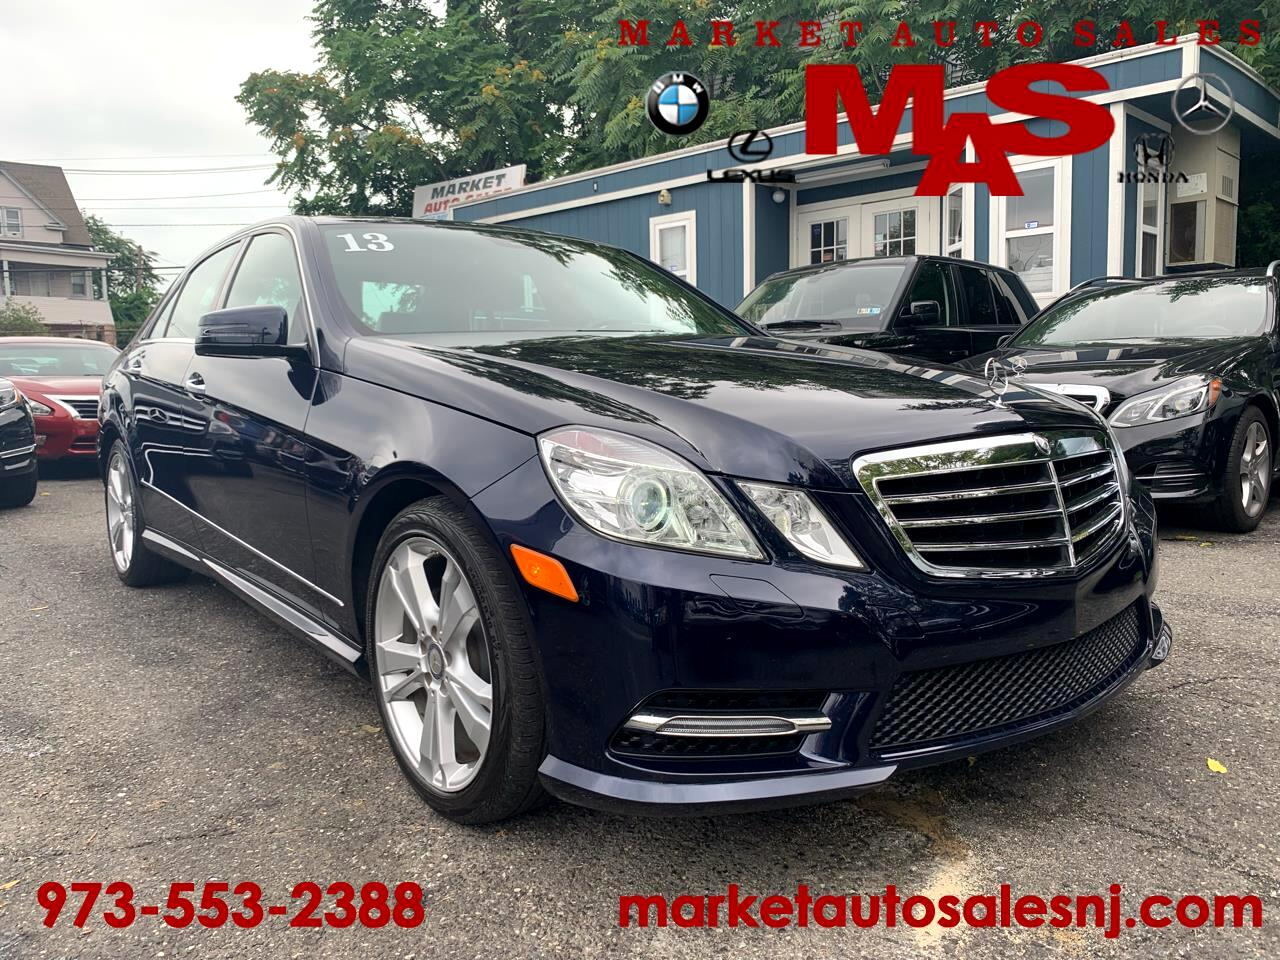 2013 Mercedes-Benz E-Class E350 4MATIC Sedan